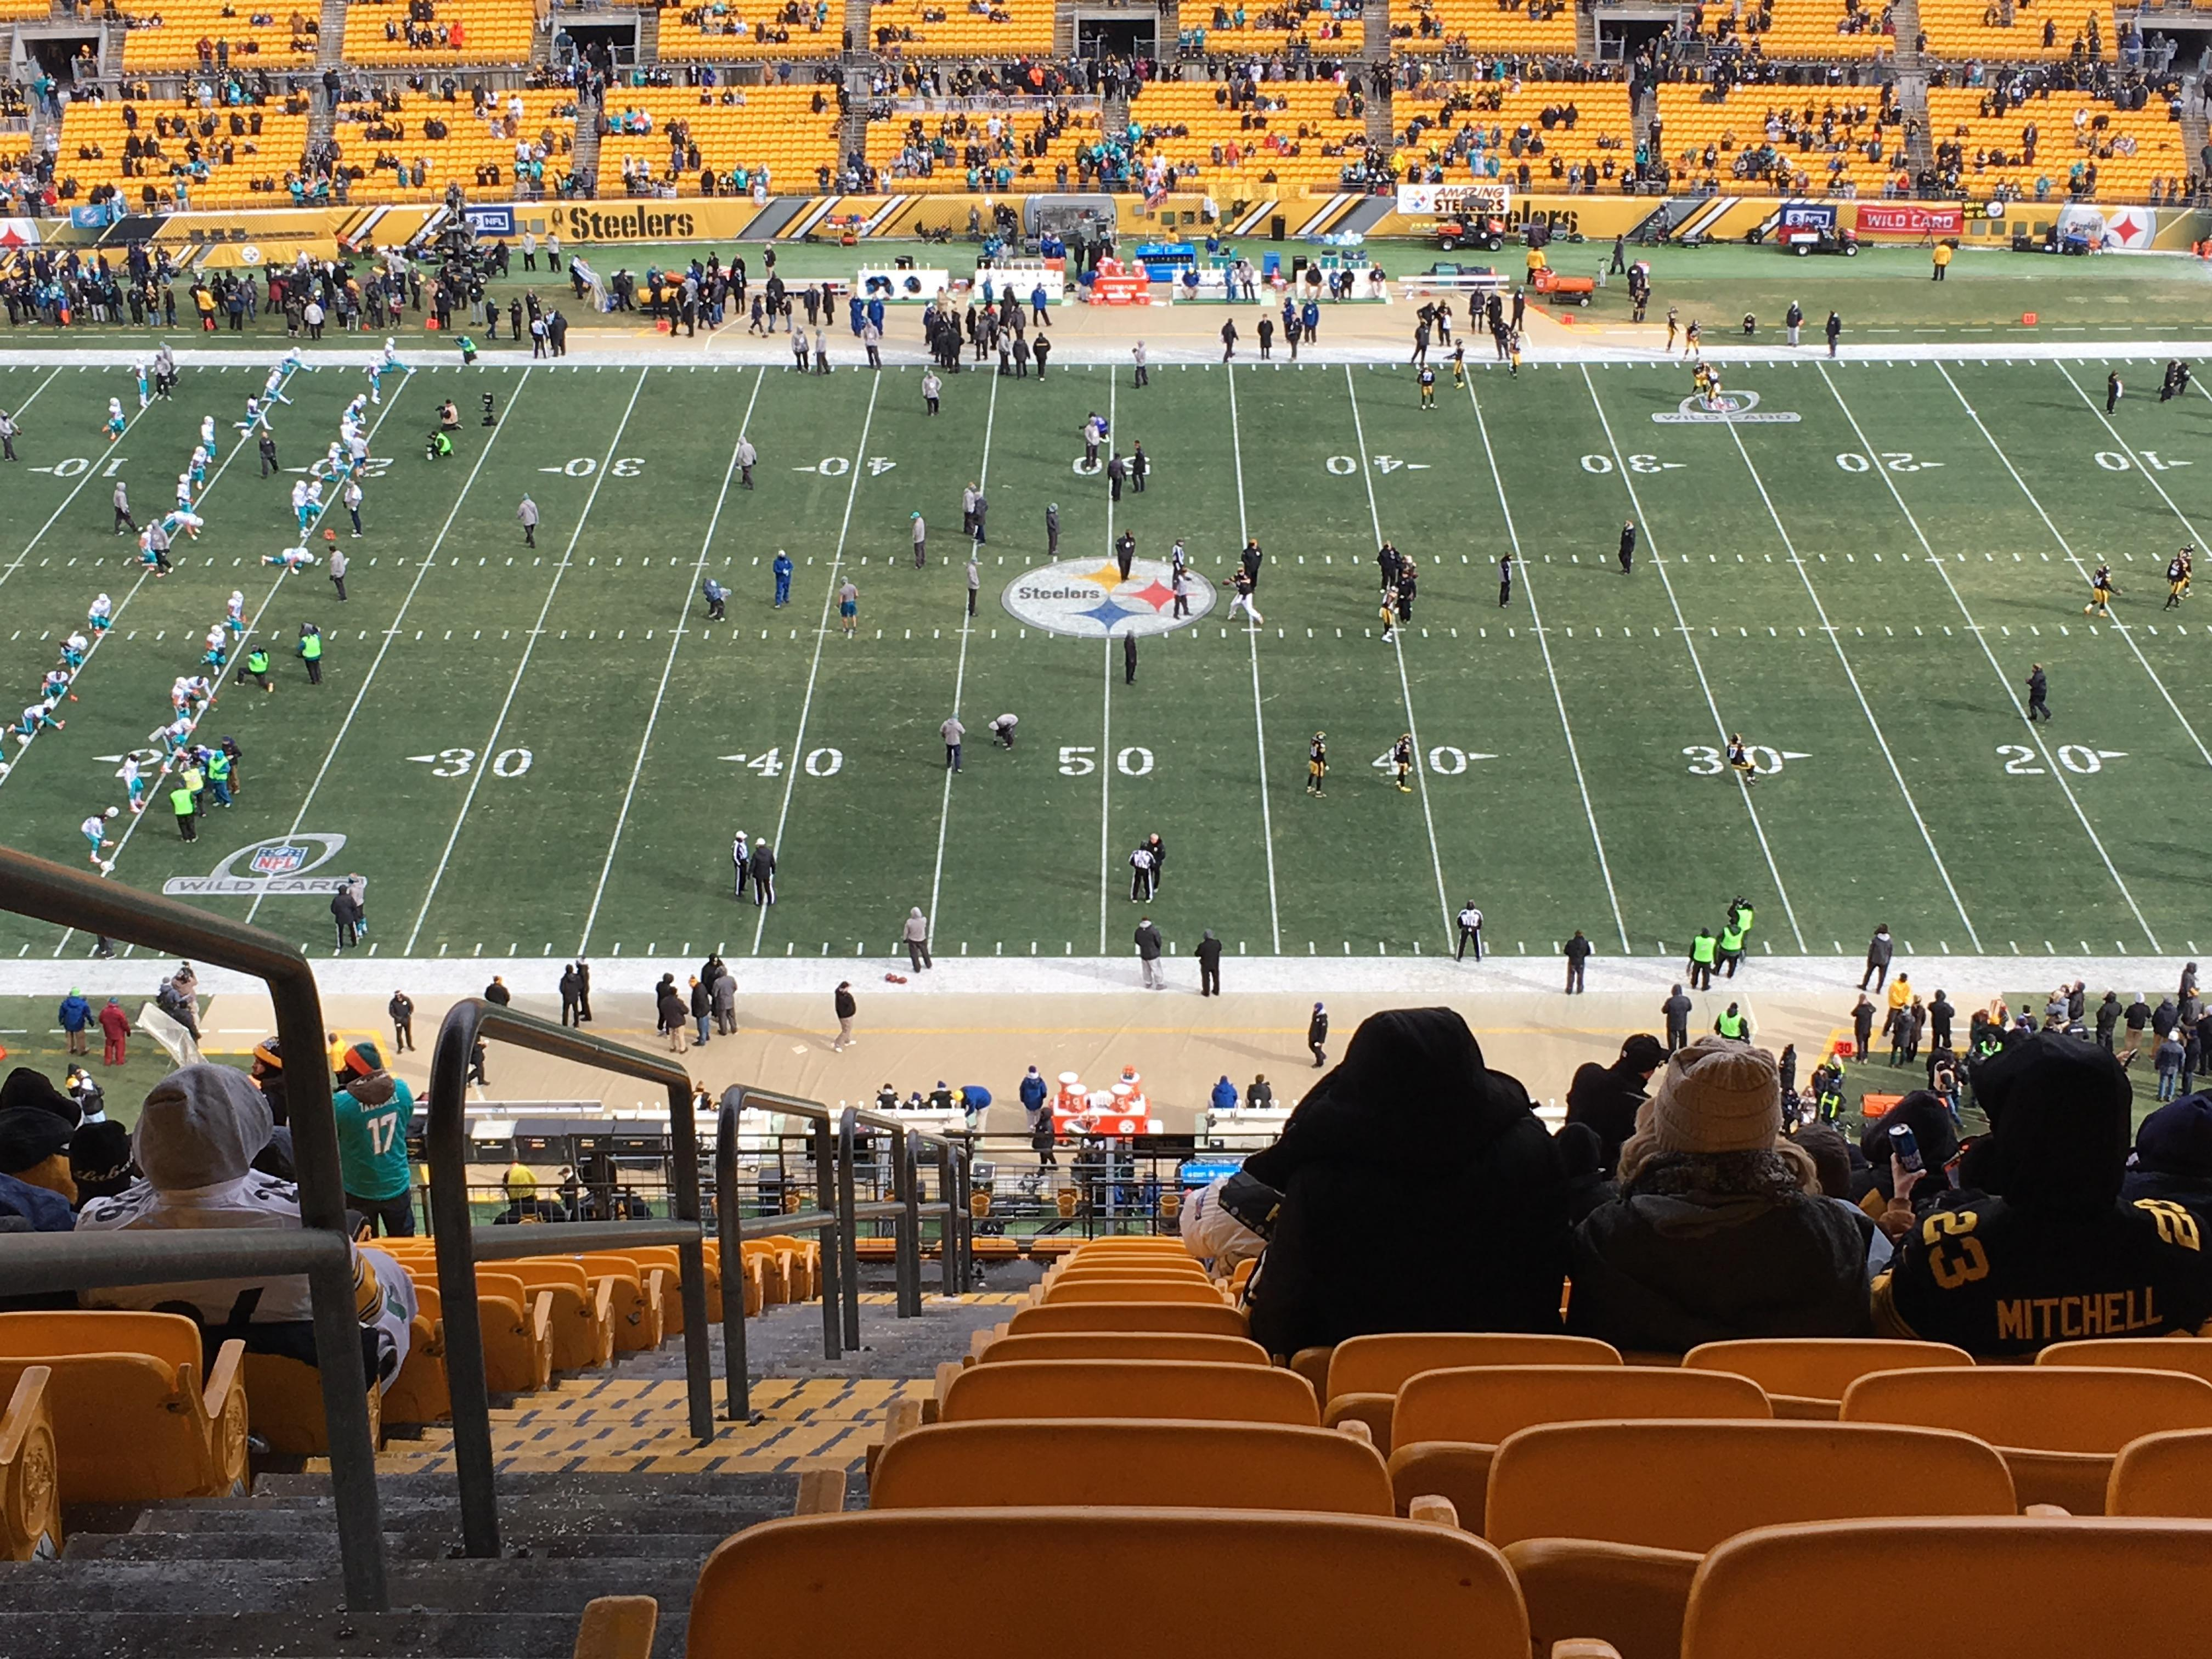 Heinz Field Section 535 Row CC Seat 26